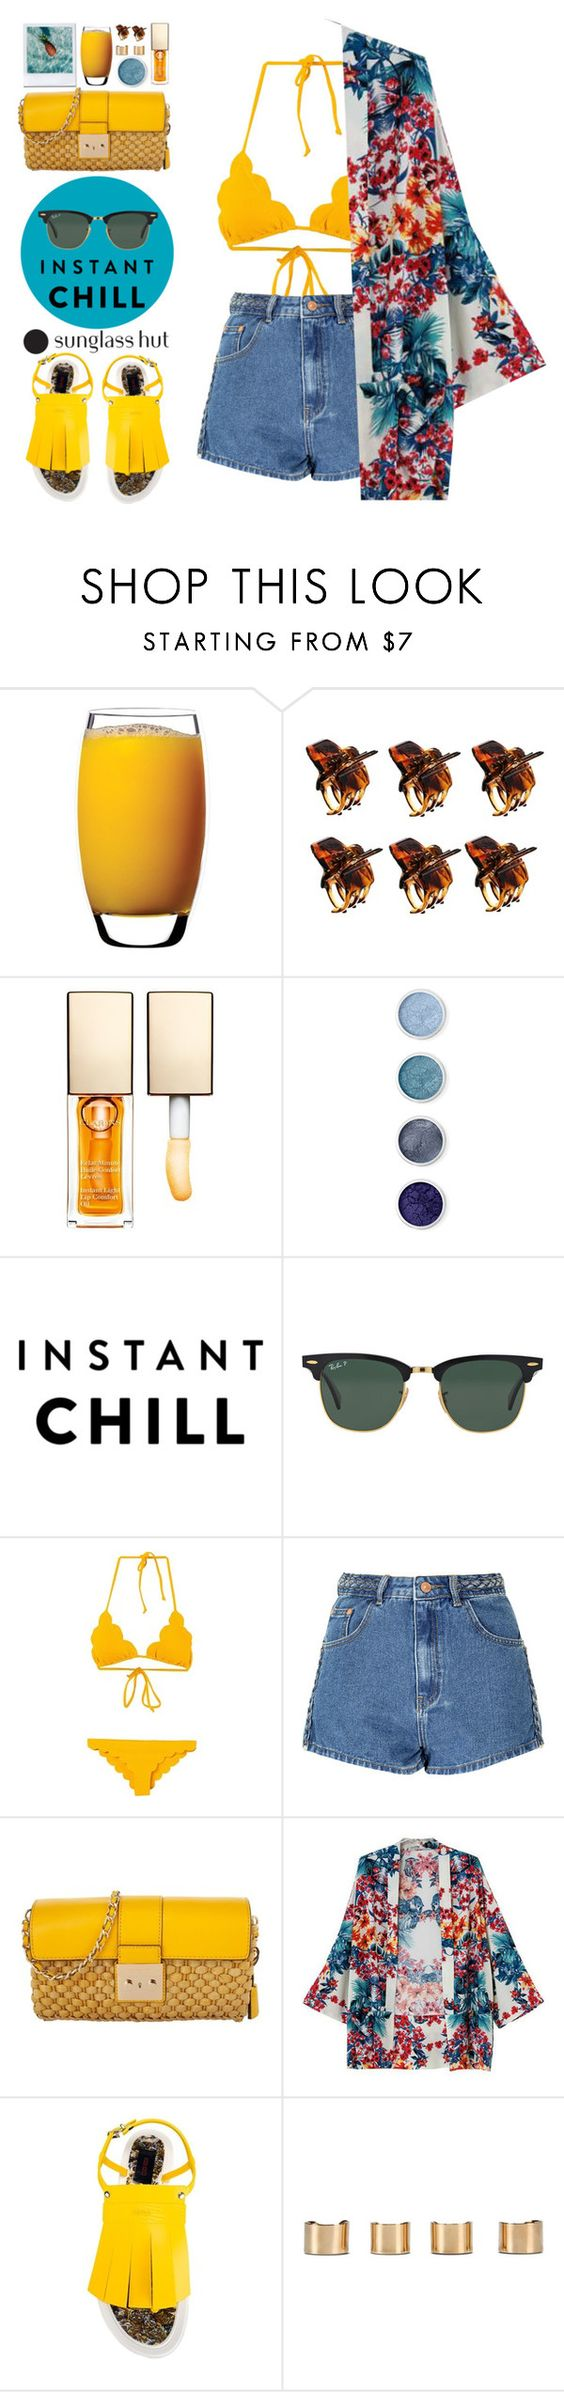 """Shades of You: Sunglass Hut Contest Entry"" by blueberrylexie ❤ liked on Polyvore featuring Luigi Bormioli, ASOS, Clarins, Terre Mère, Ray-Ban, Marysia Swim, Glamorous, Michael Kors, Kenzo and Maison Margiela"